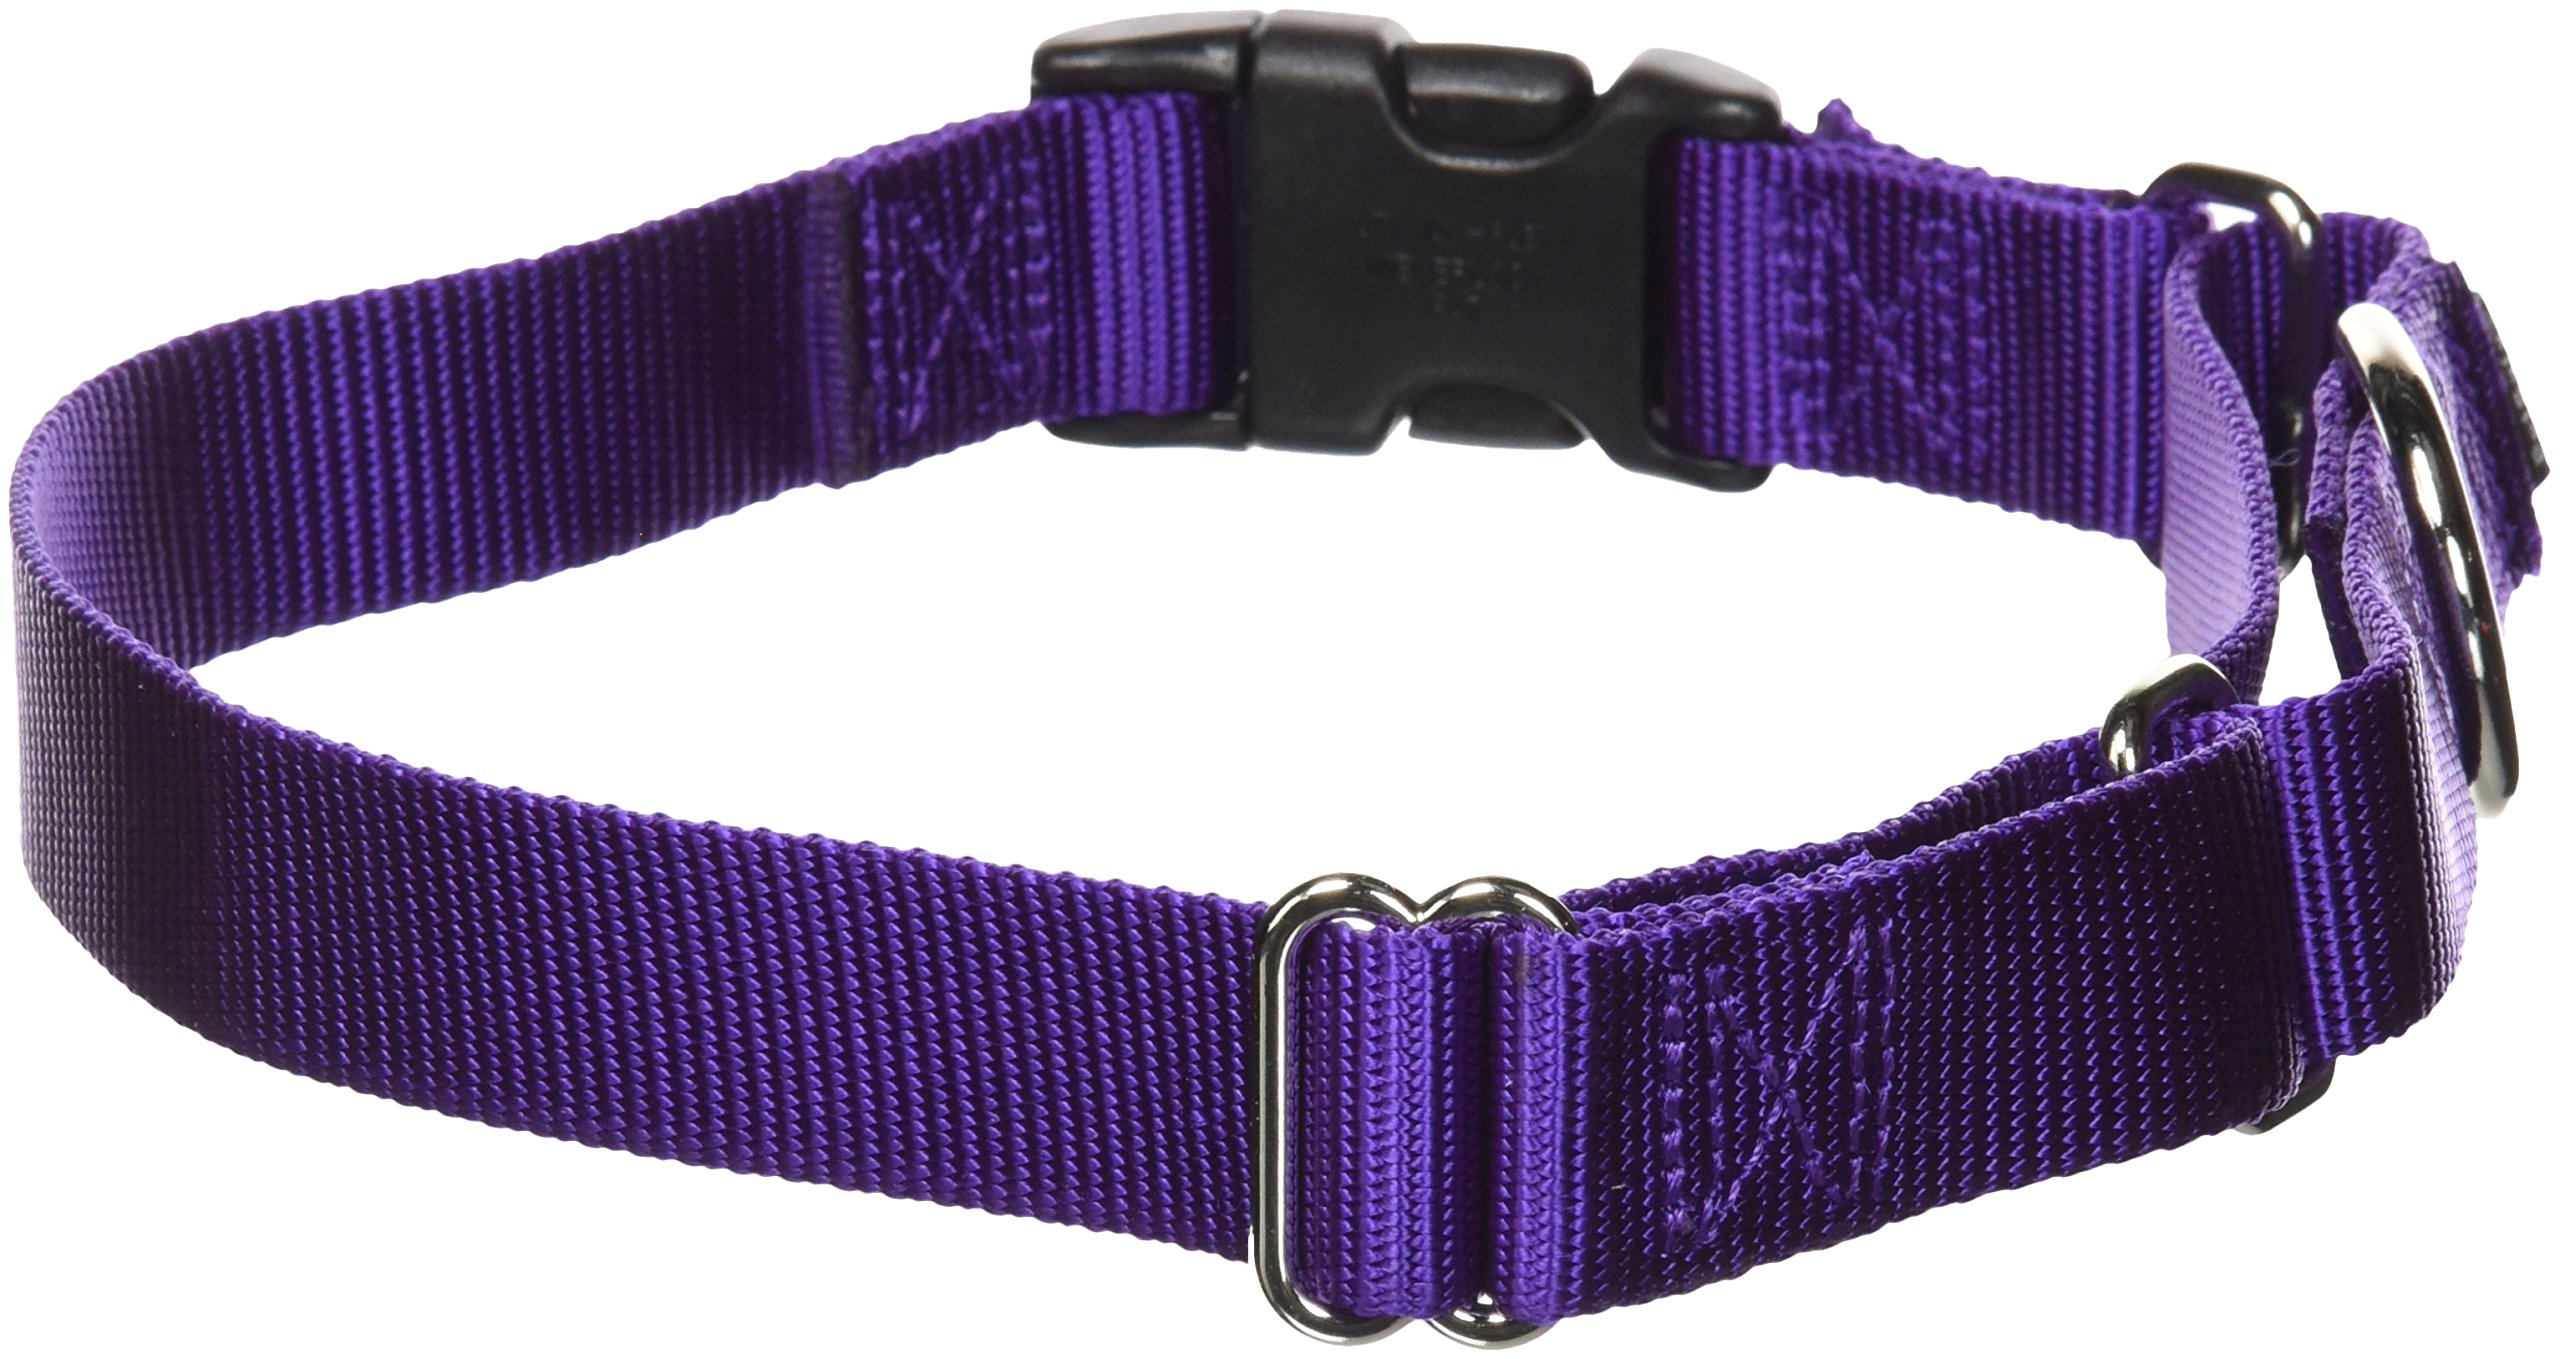 PetSafe Martingale Collar with Quick Snap Buckle, 1'' Large, Deep Purple